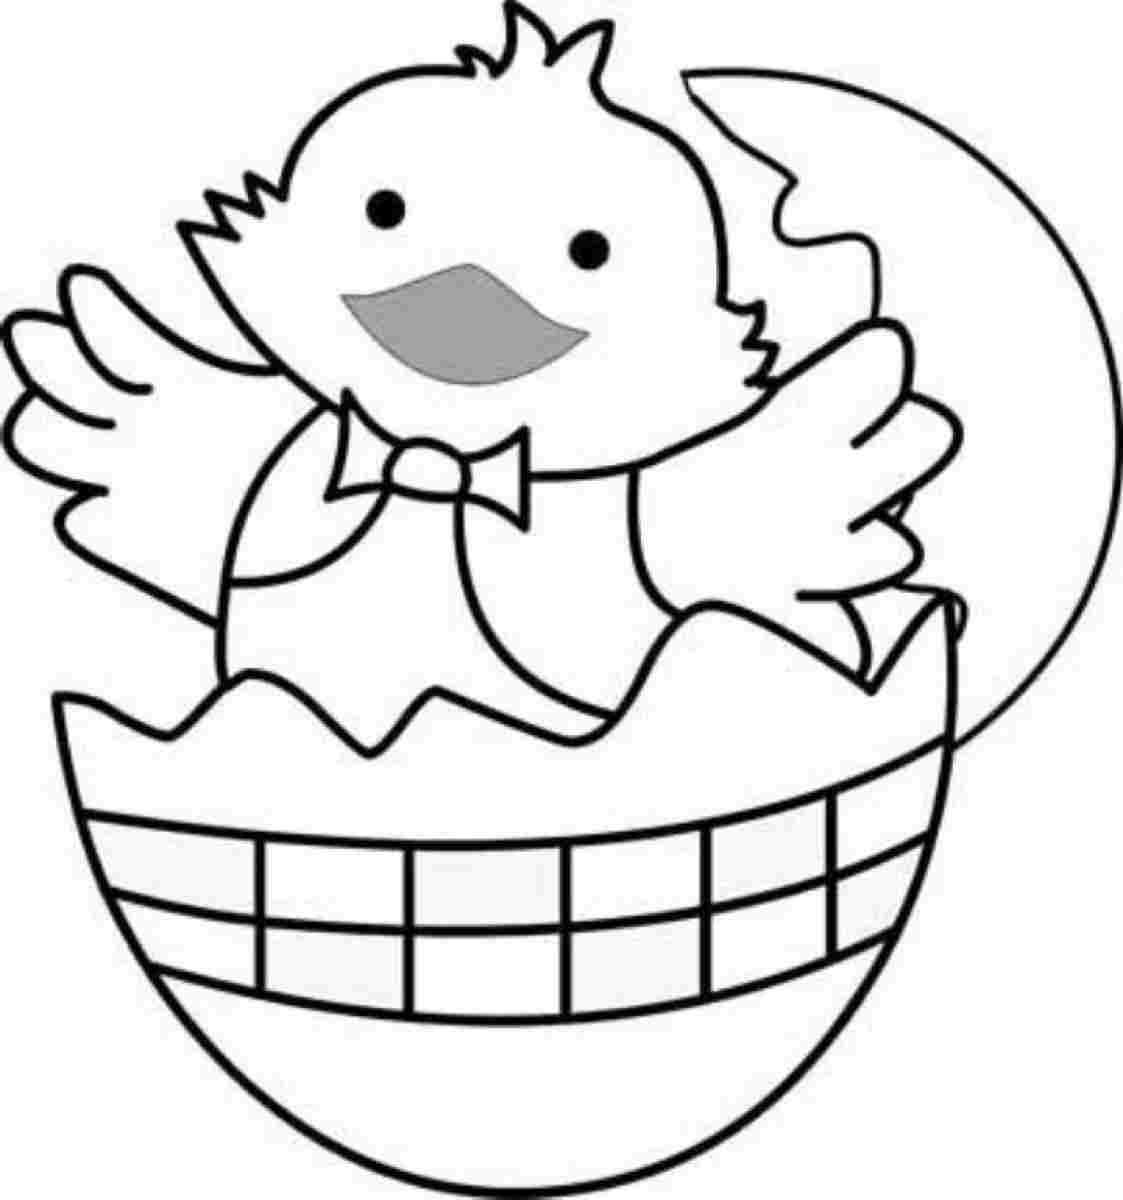 4 Images of Easter Chicks Search Printables